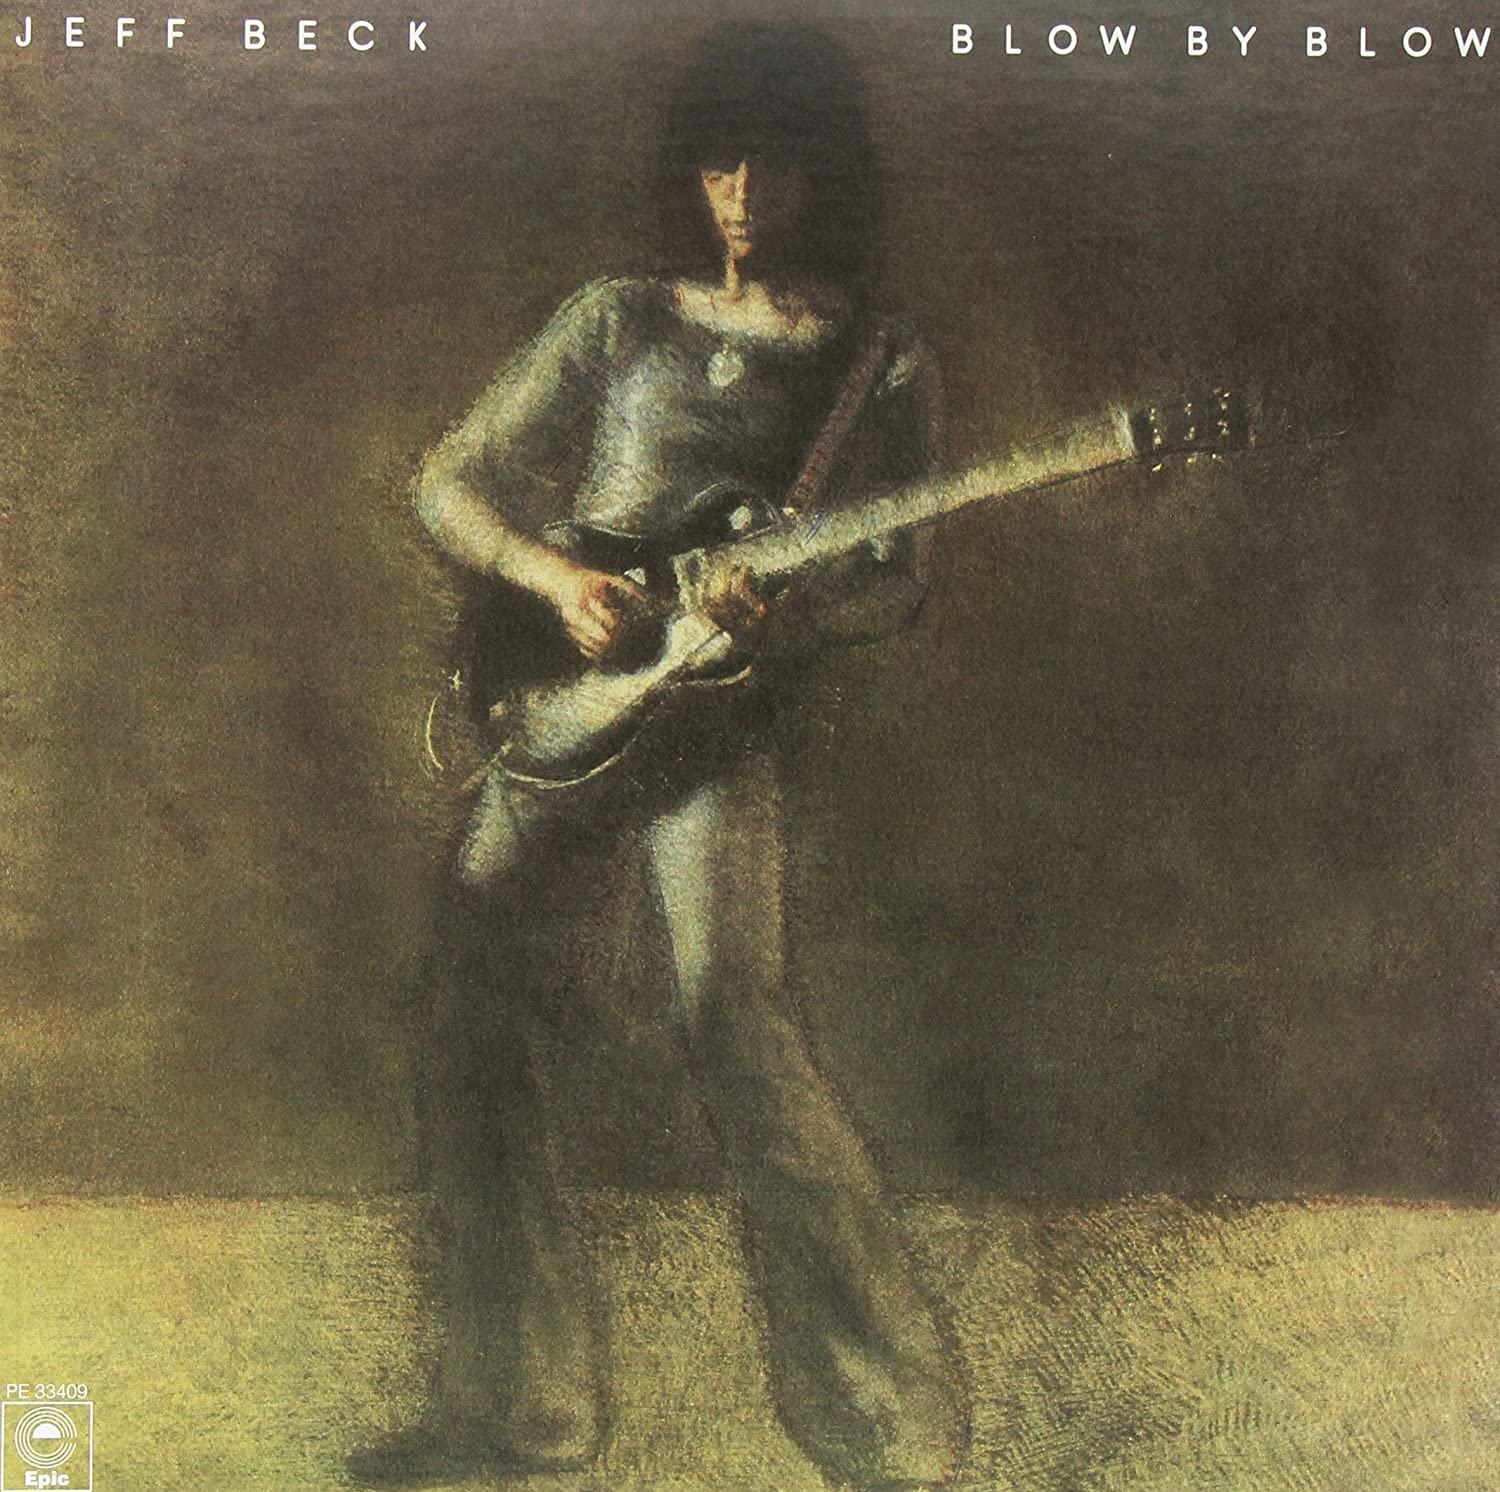 Blow By Blow [12 inch Analog]                                                                                                                                                                                                                                                    <span class=